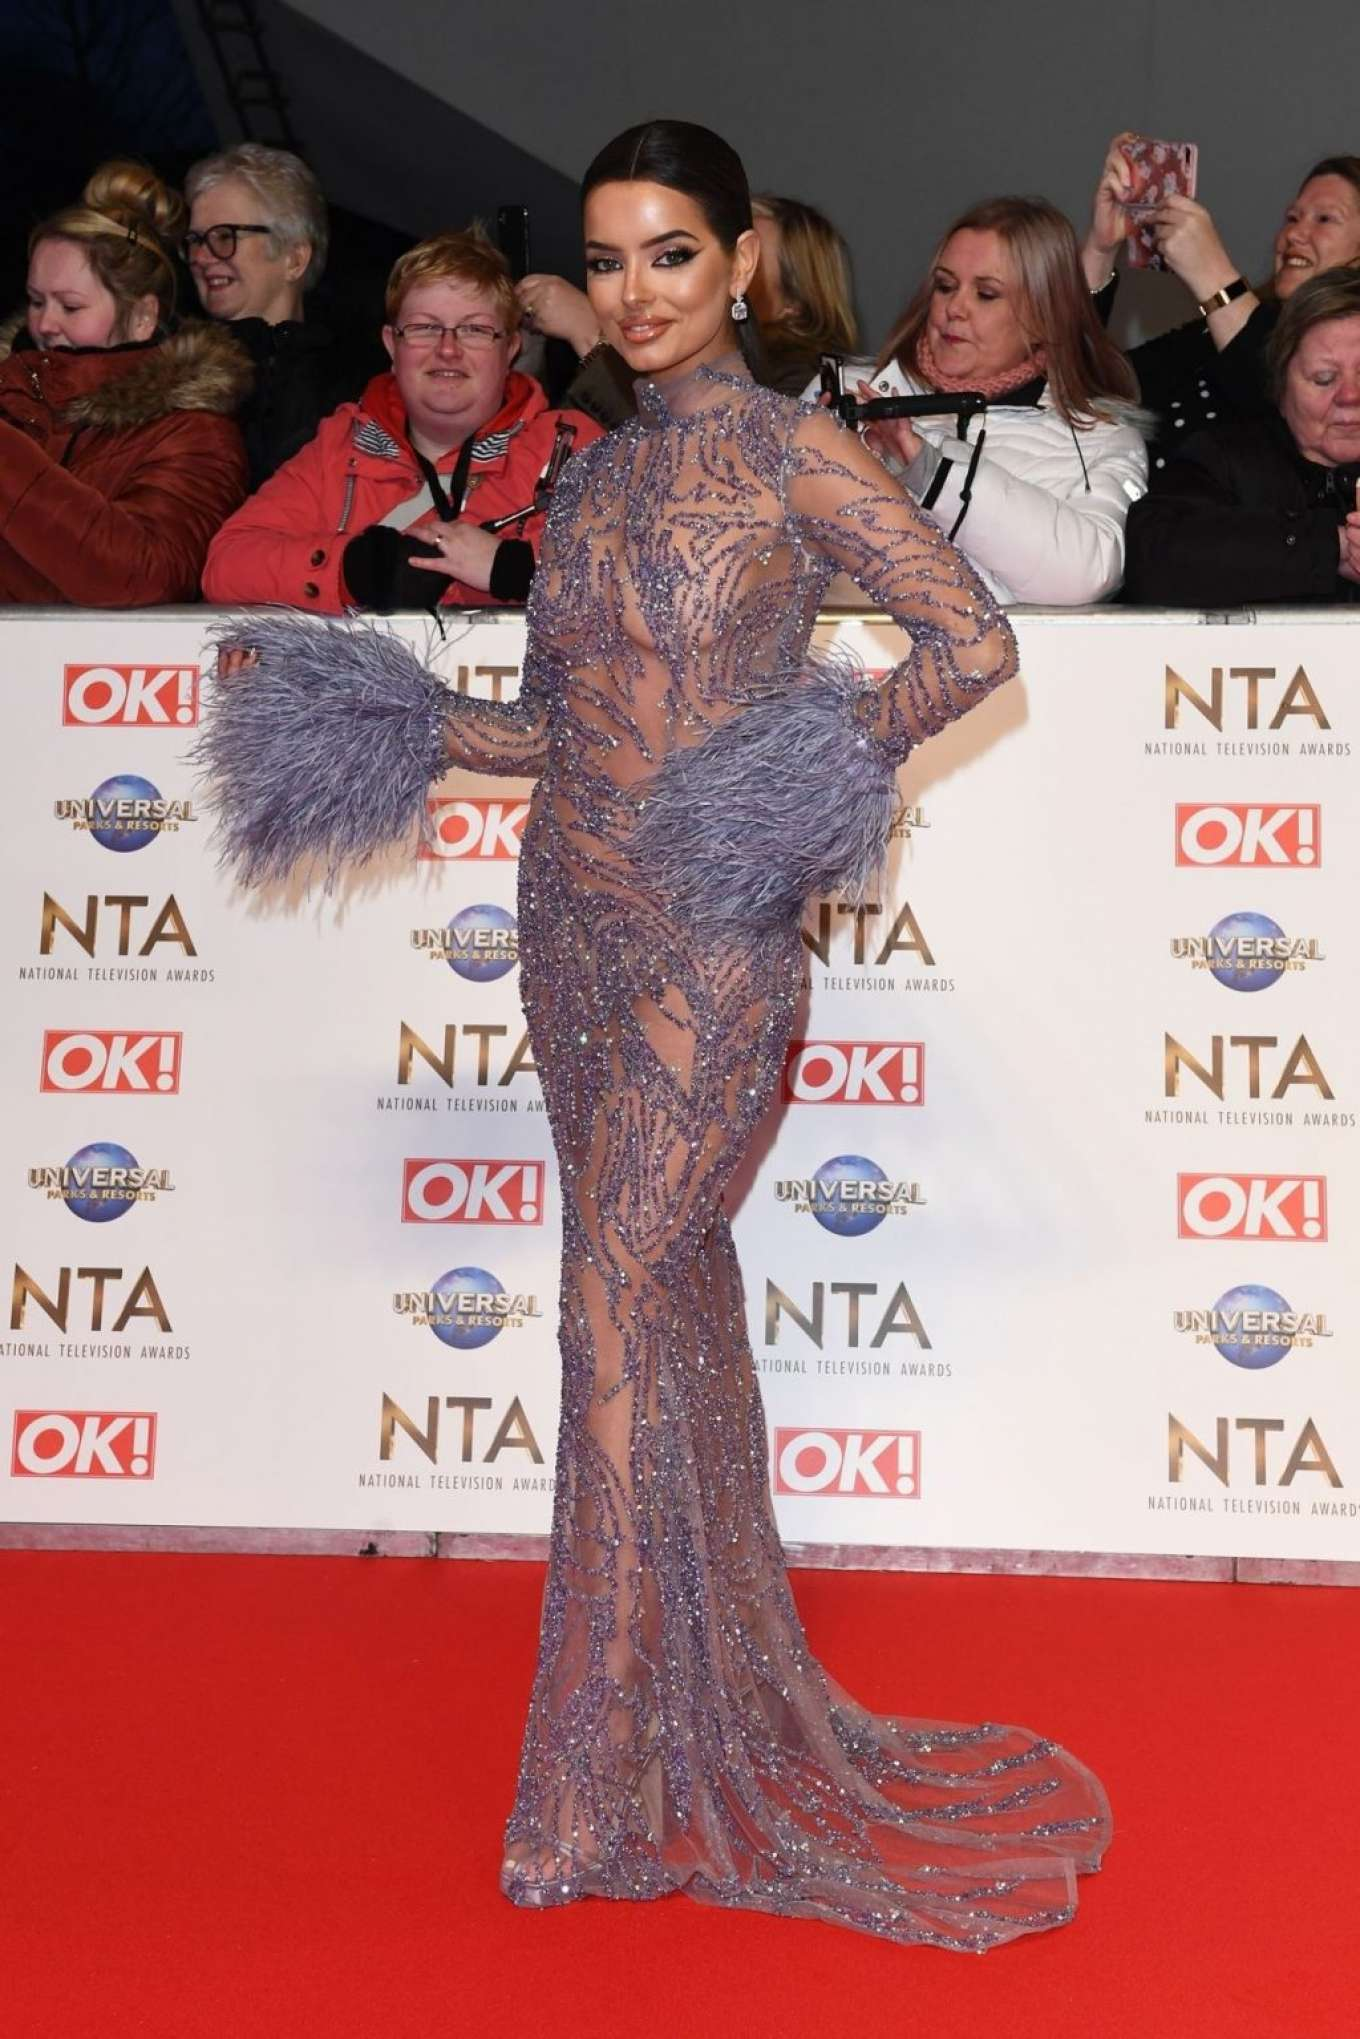 Maura Higgins - National Television Awards 2020 in London